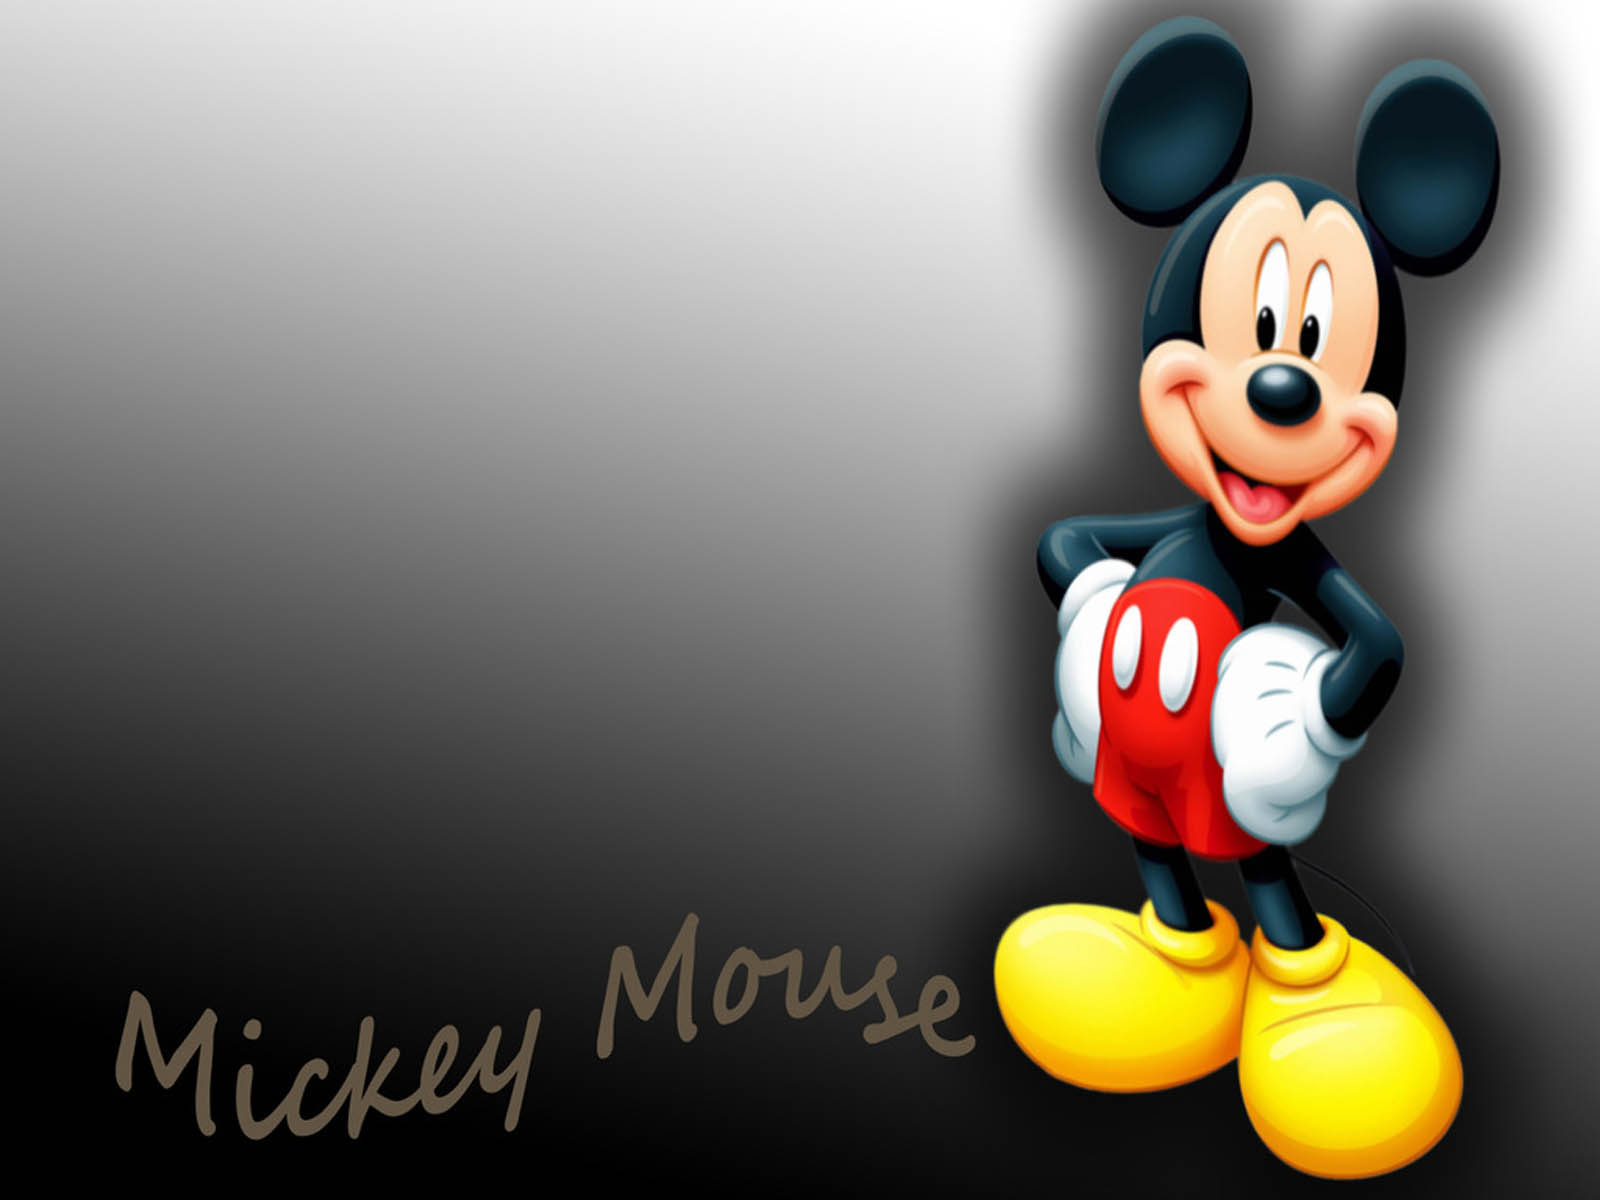 Hd Wallpapers Hq Free Images Download Desktop Wallpapers Mickey